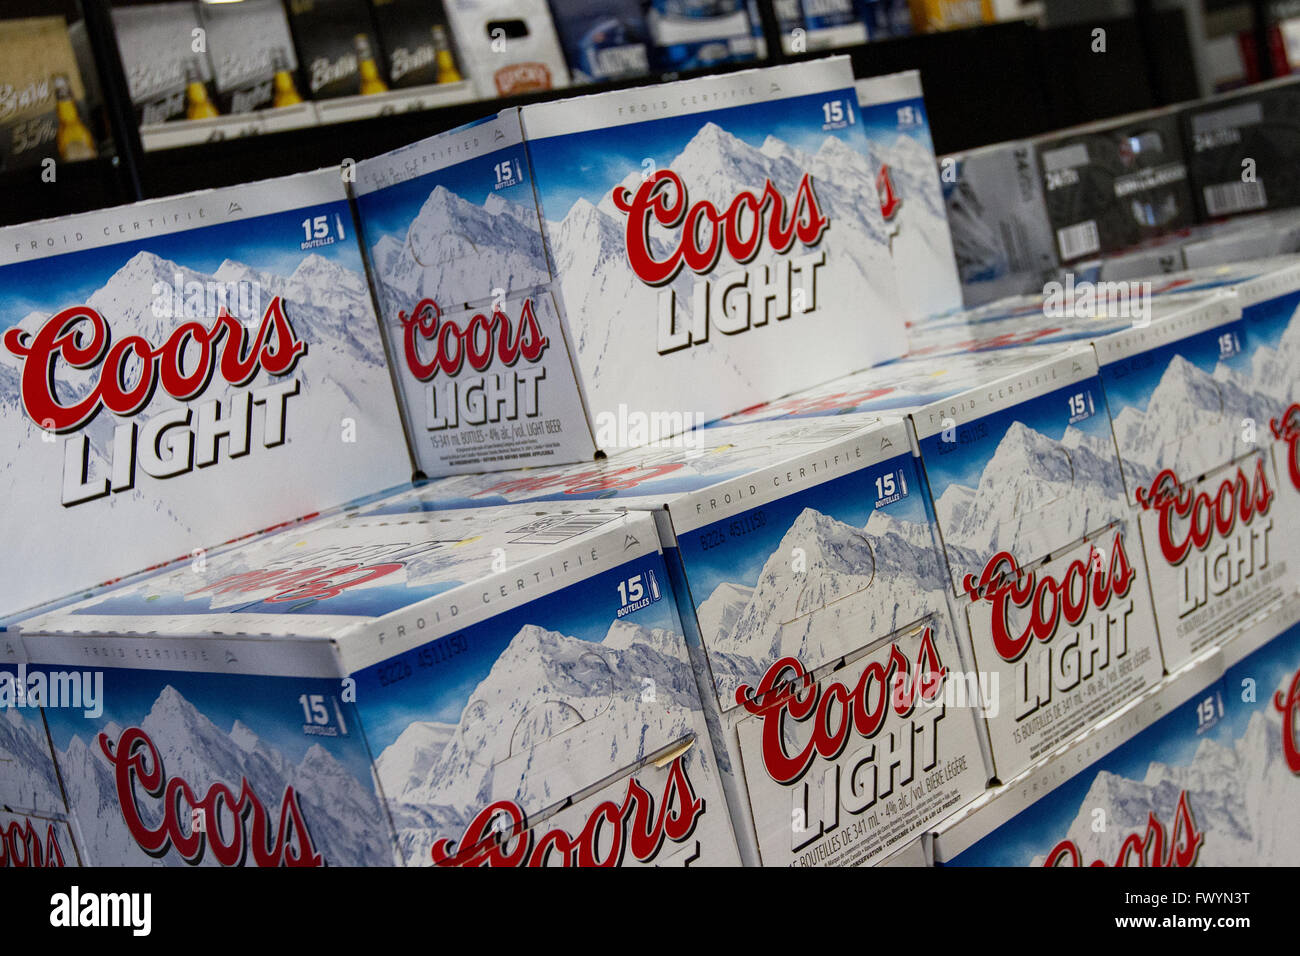 coors beers case study Molson coors, case study about molson coors, tadcaster molson coors brewing company is the world's seventh largest brewer.